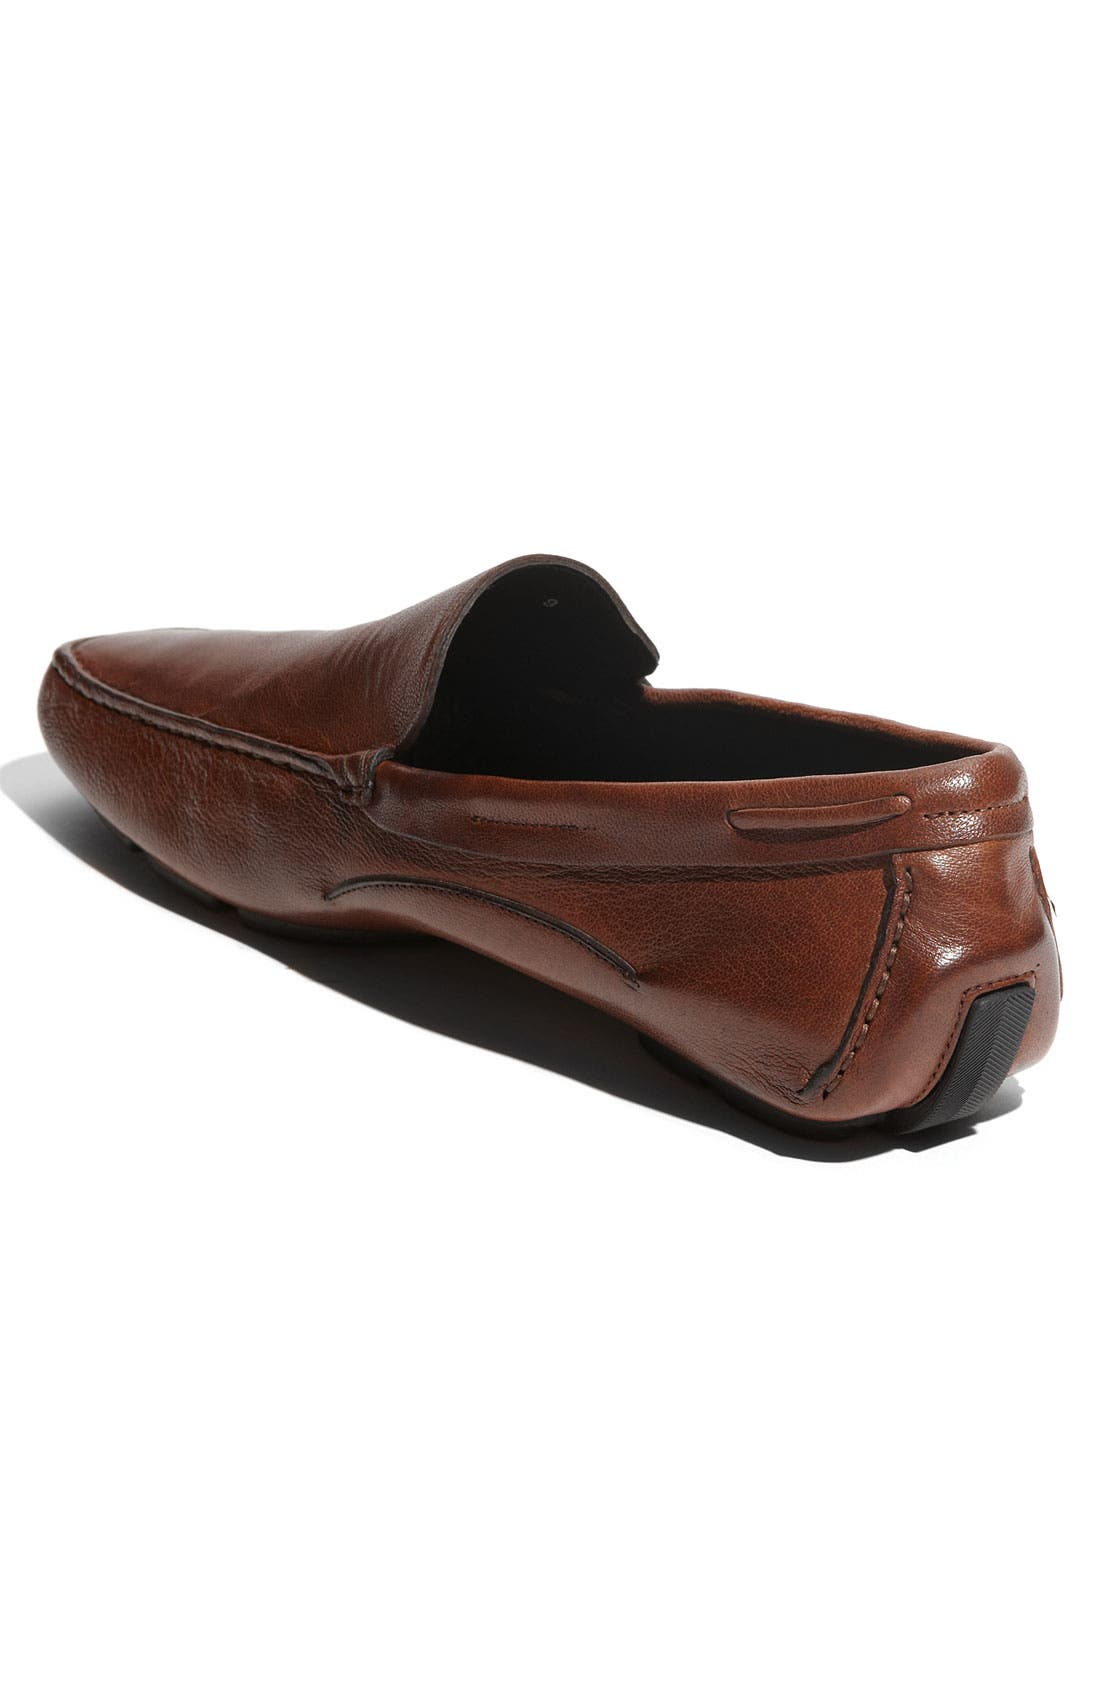 Alternate Image 3  - To Boot New York 'Barkley' Loafer